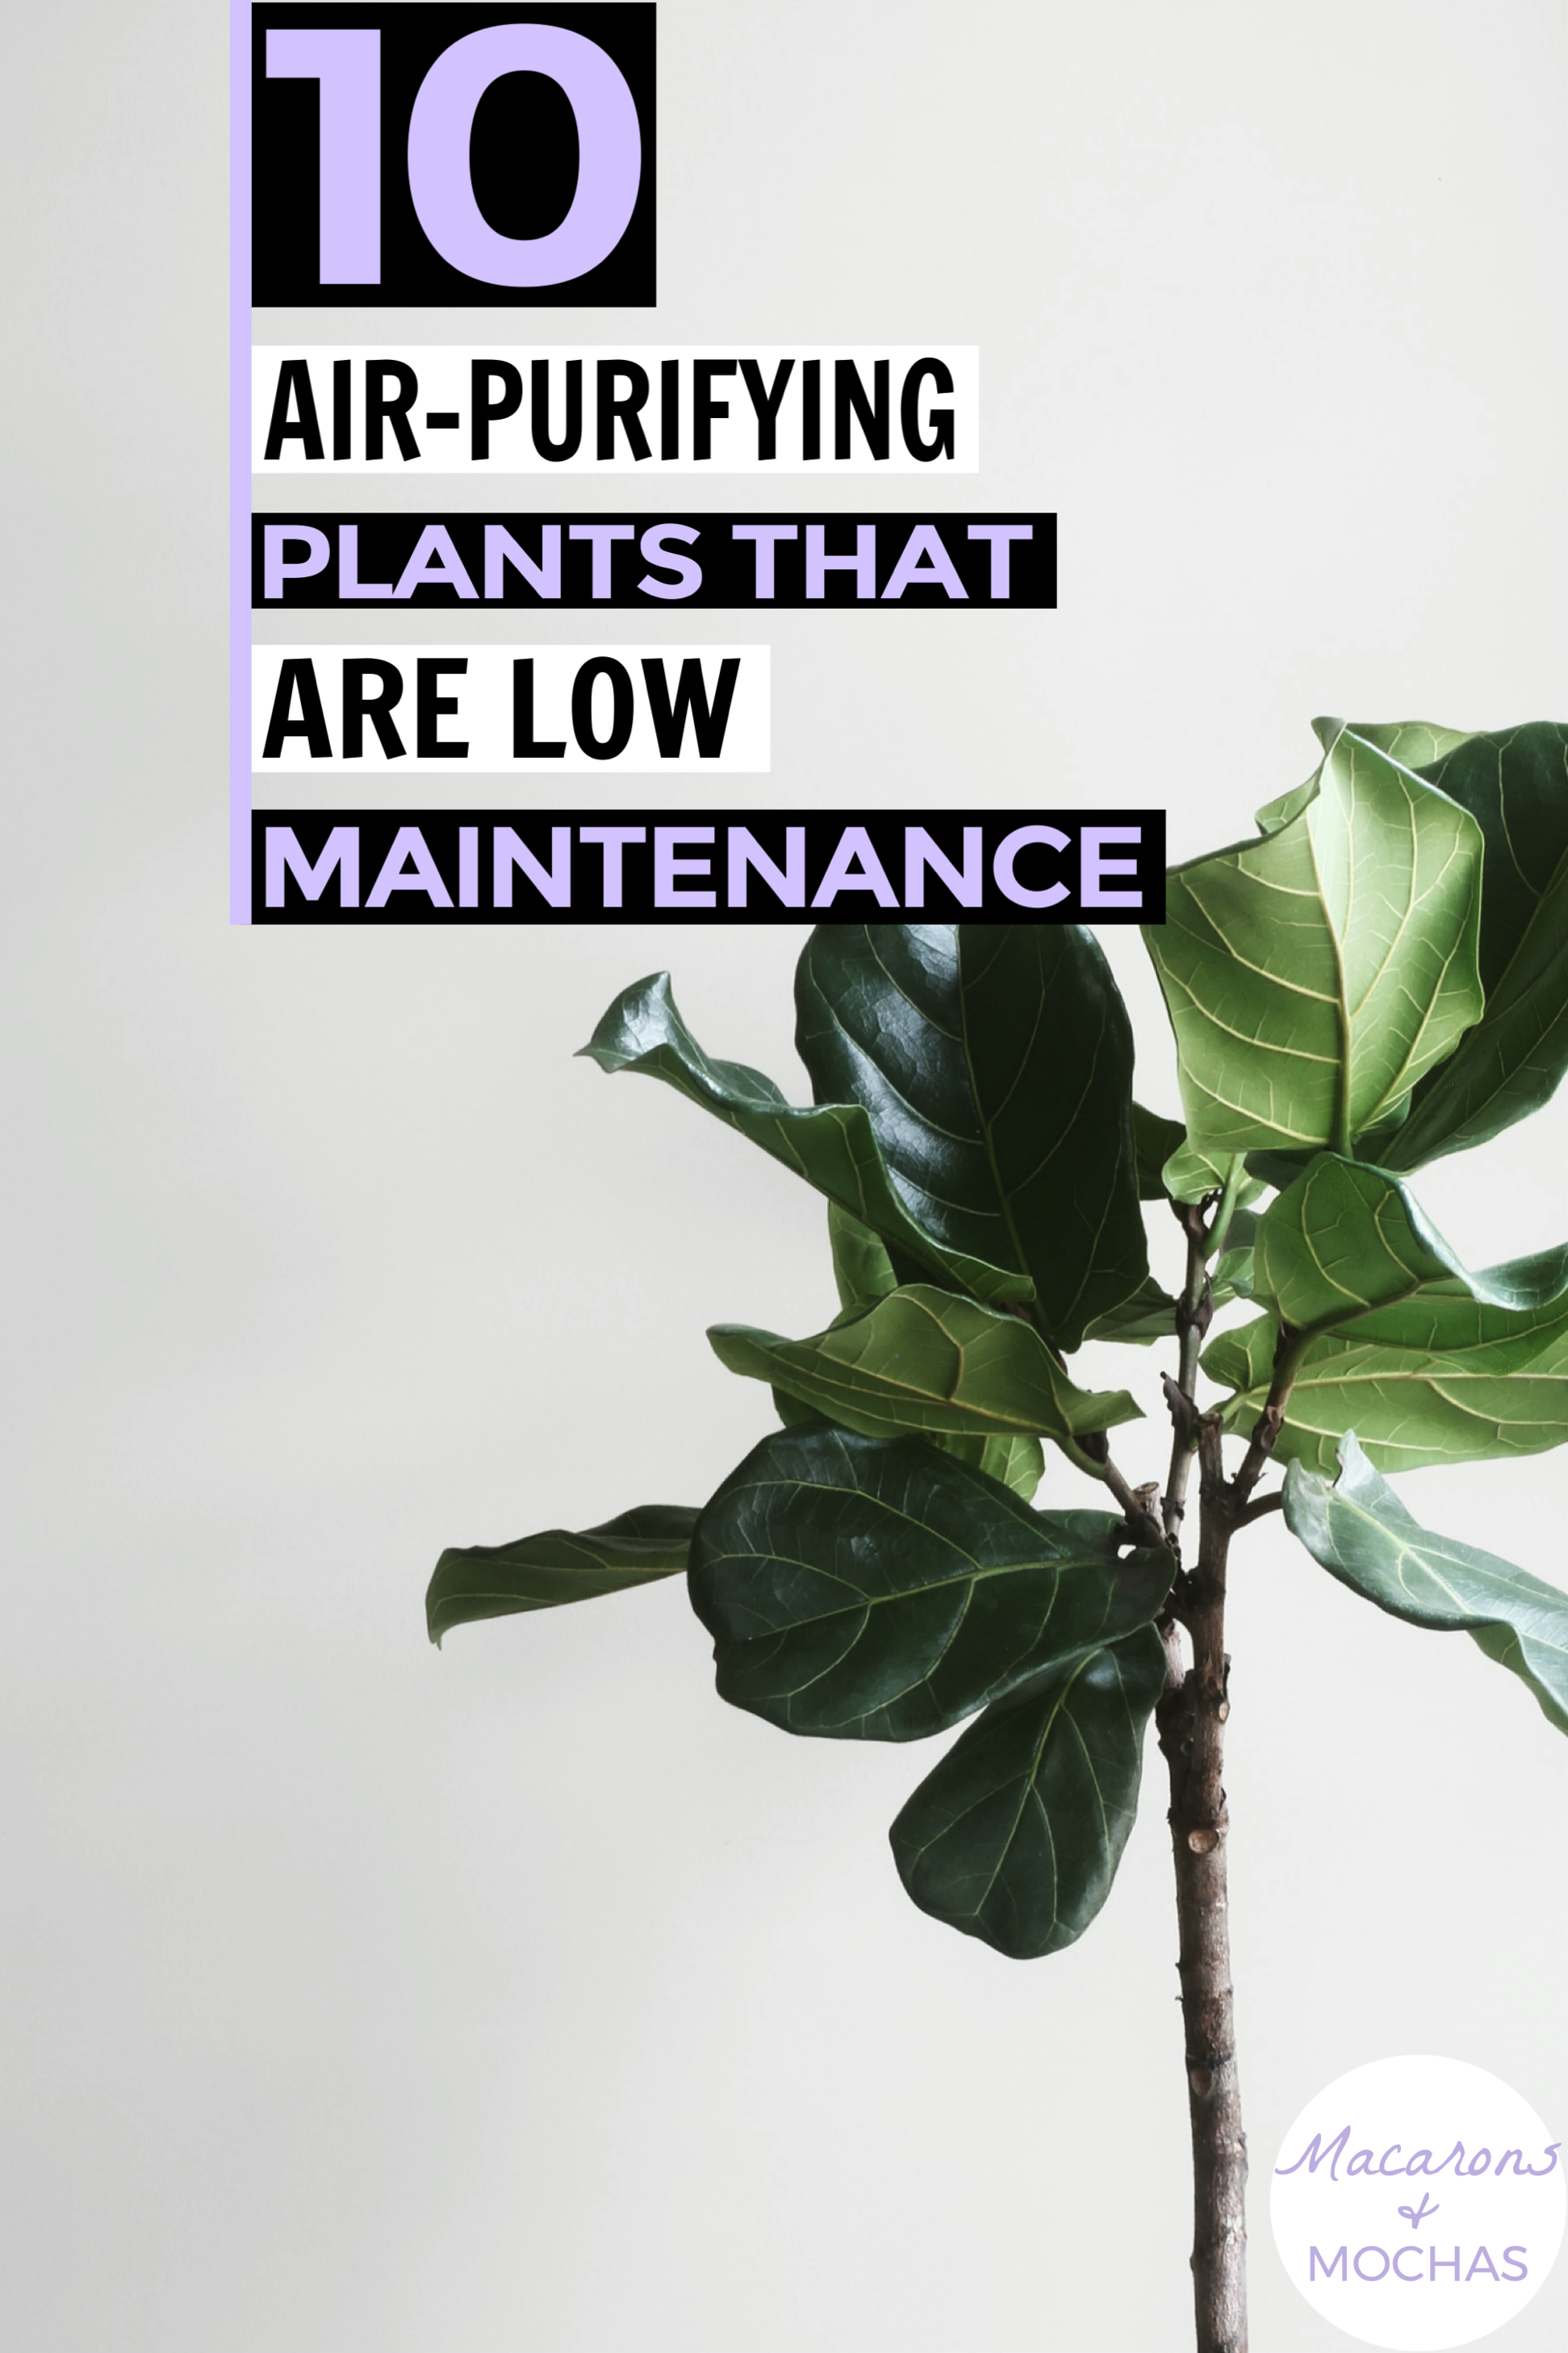 These air purifying plants are SO COOL! I'm so glad I